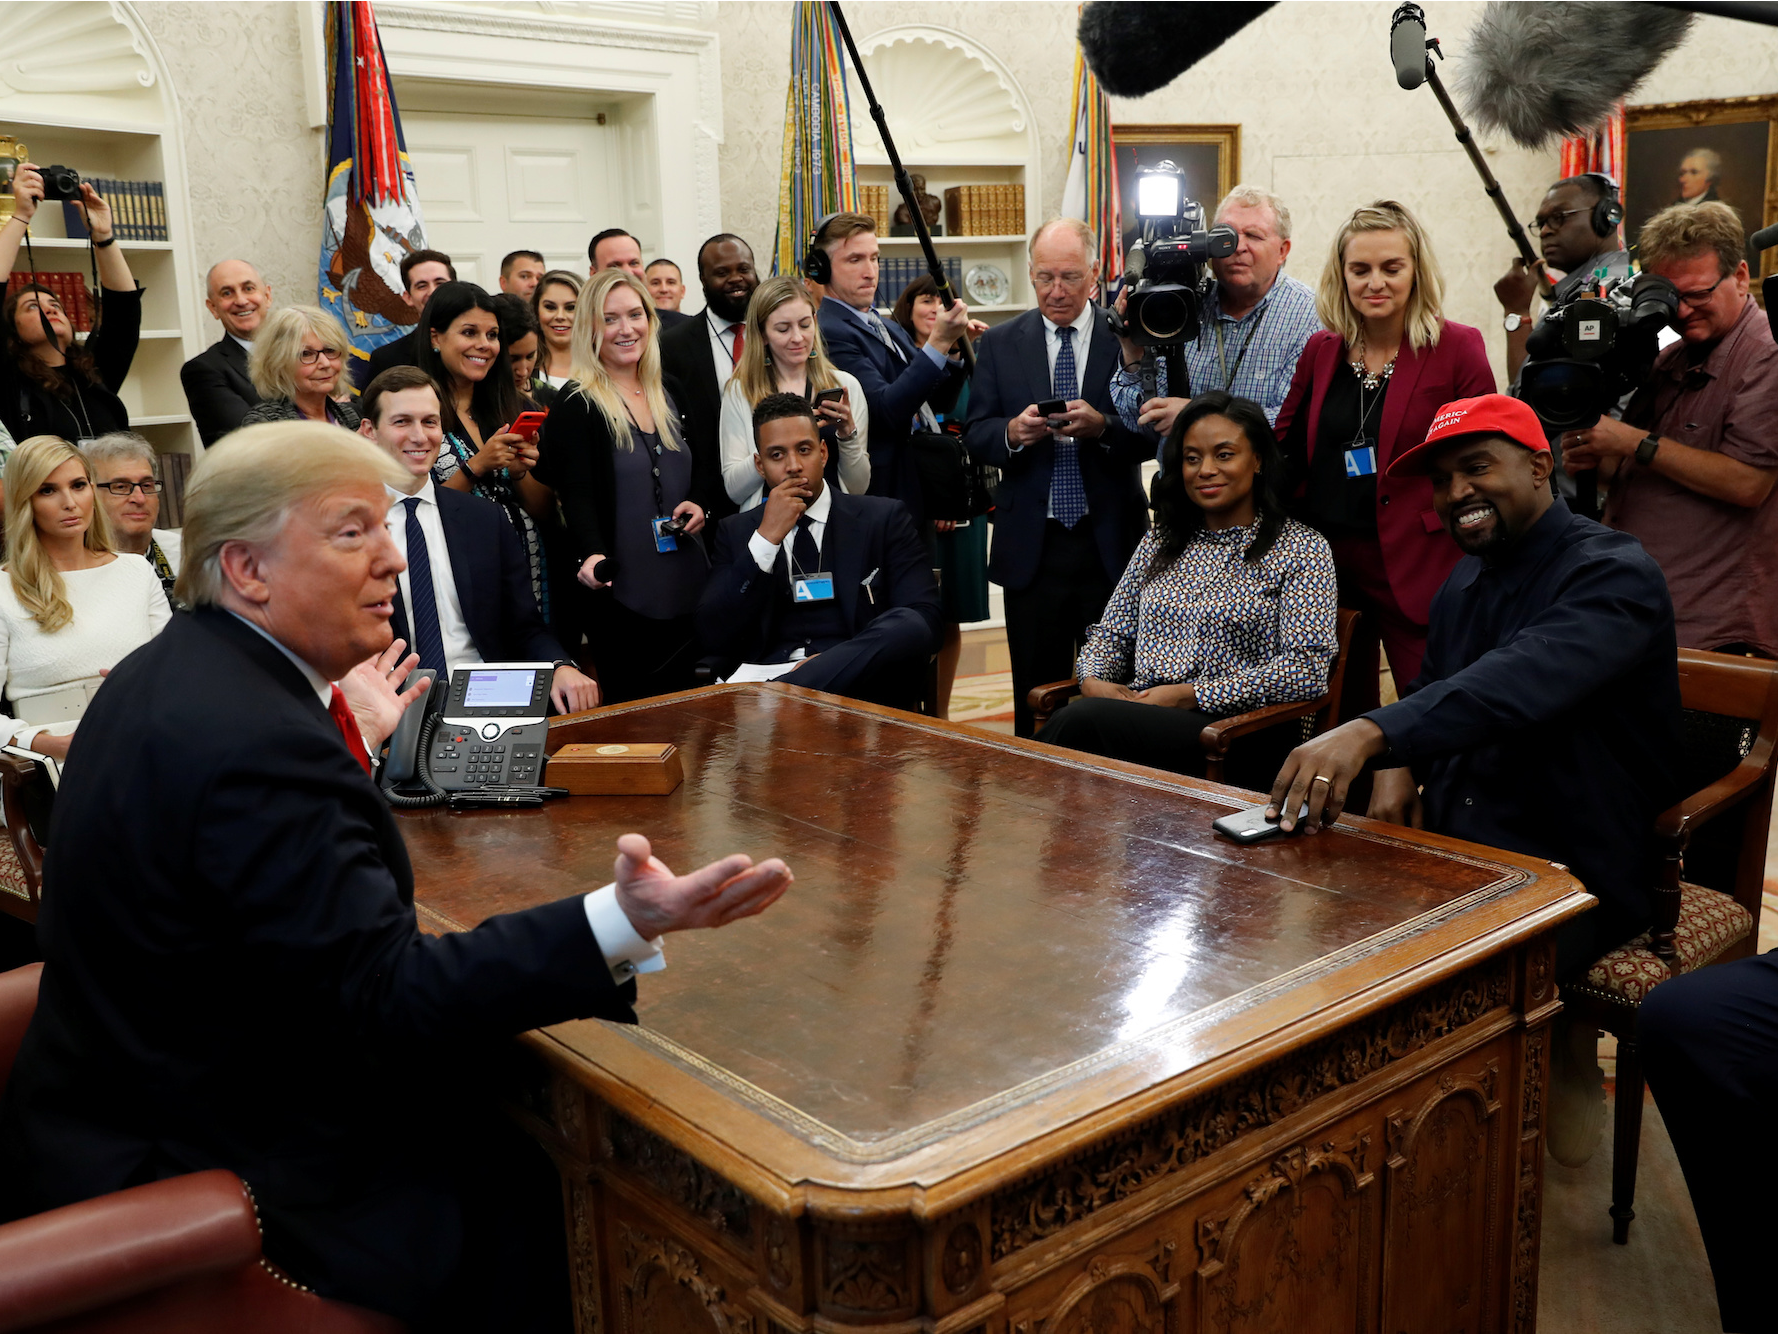 Kanye West wants Apple to build an 'iPlane' for President Trump to replace Air Force One (AAPL)